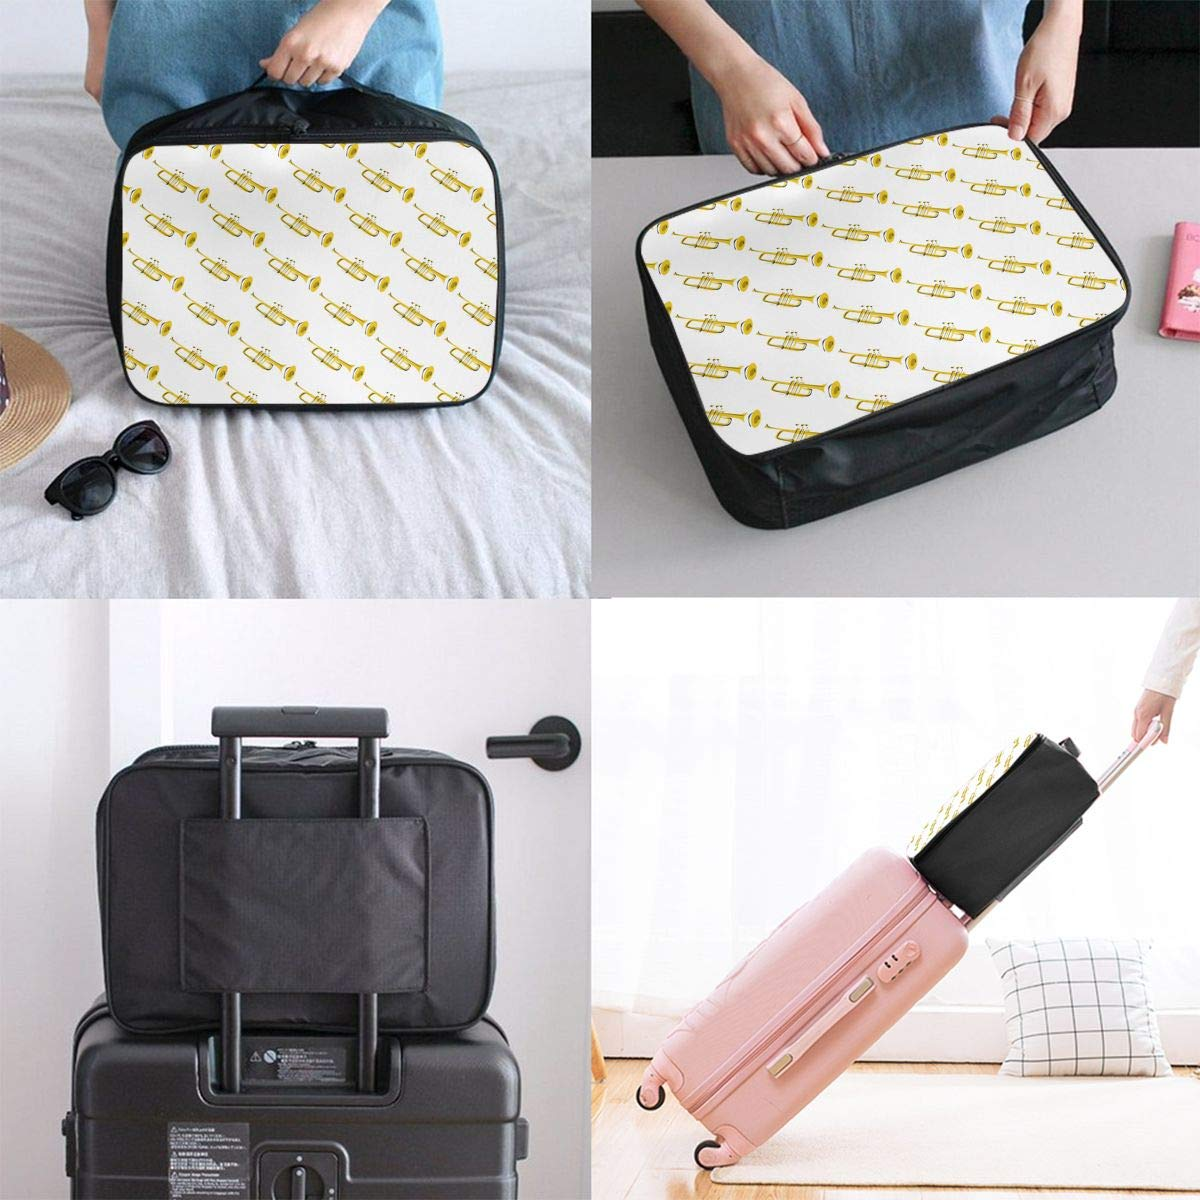 Luggage Lever Bags For Travel Lightweight Large Capacity Portable Duffel Bag For Men /& Women Travel Luggage Duffel Bag Golden French Horn Pattern